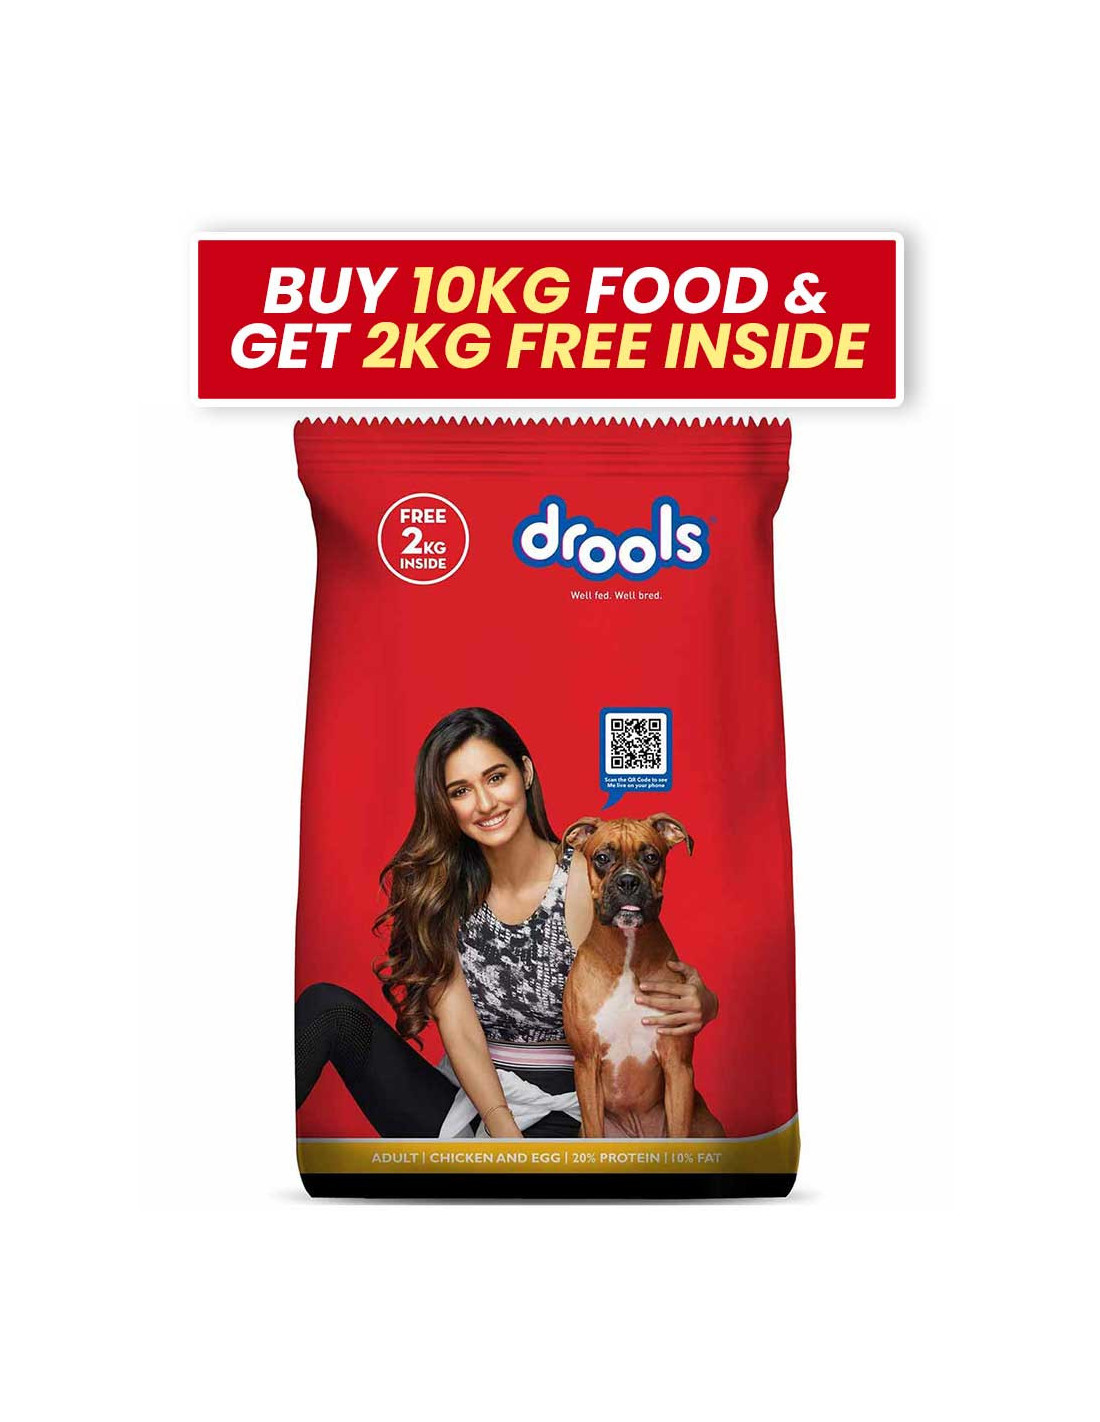 Drools Adult Chicken Egg Dog Food 10 Kg At Lowest Price Weight 10 Kg